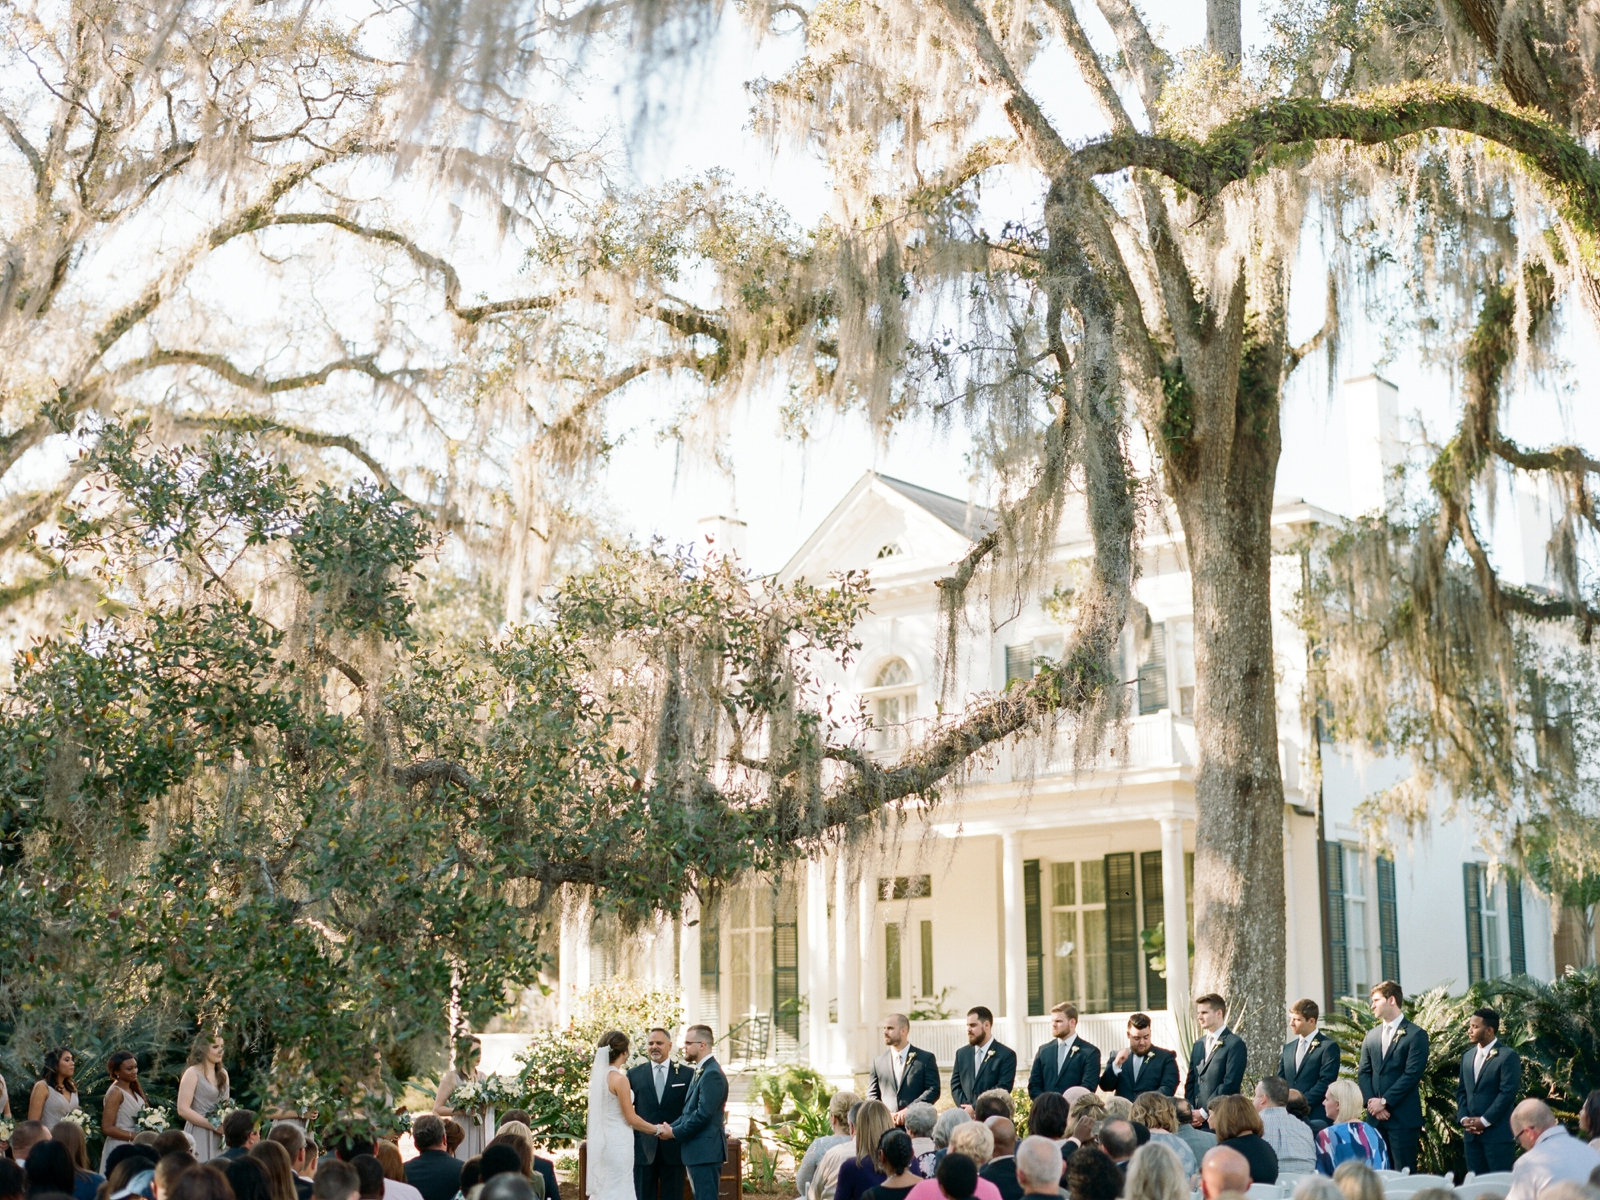 goodwood museum tallahassee wedding photographer - tallahassee florida - shannon griffin_0027.jpg